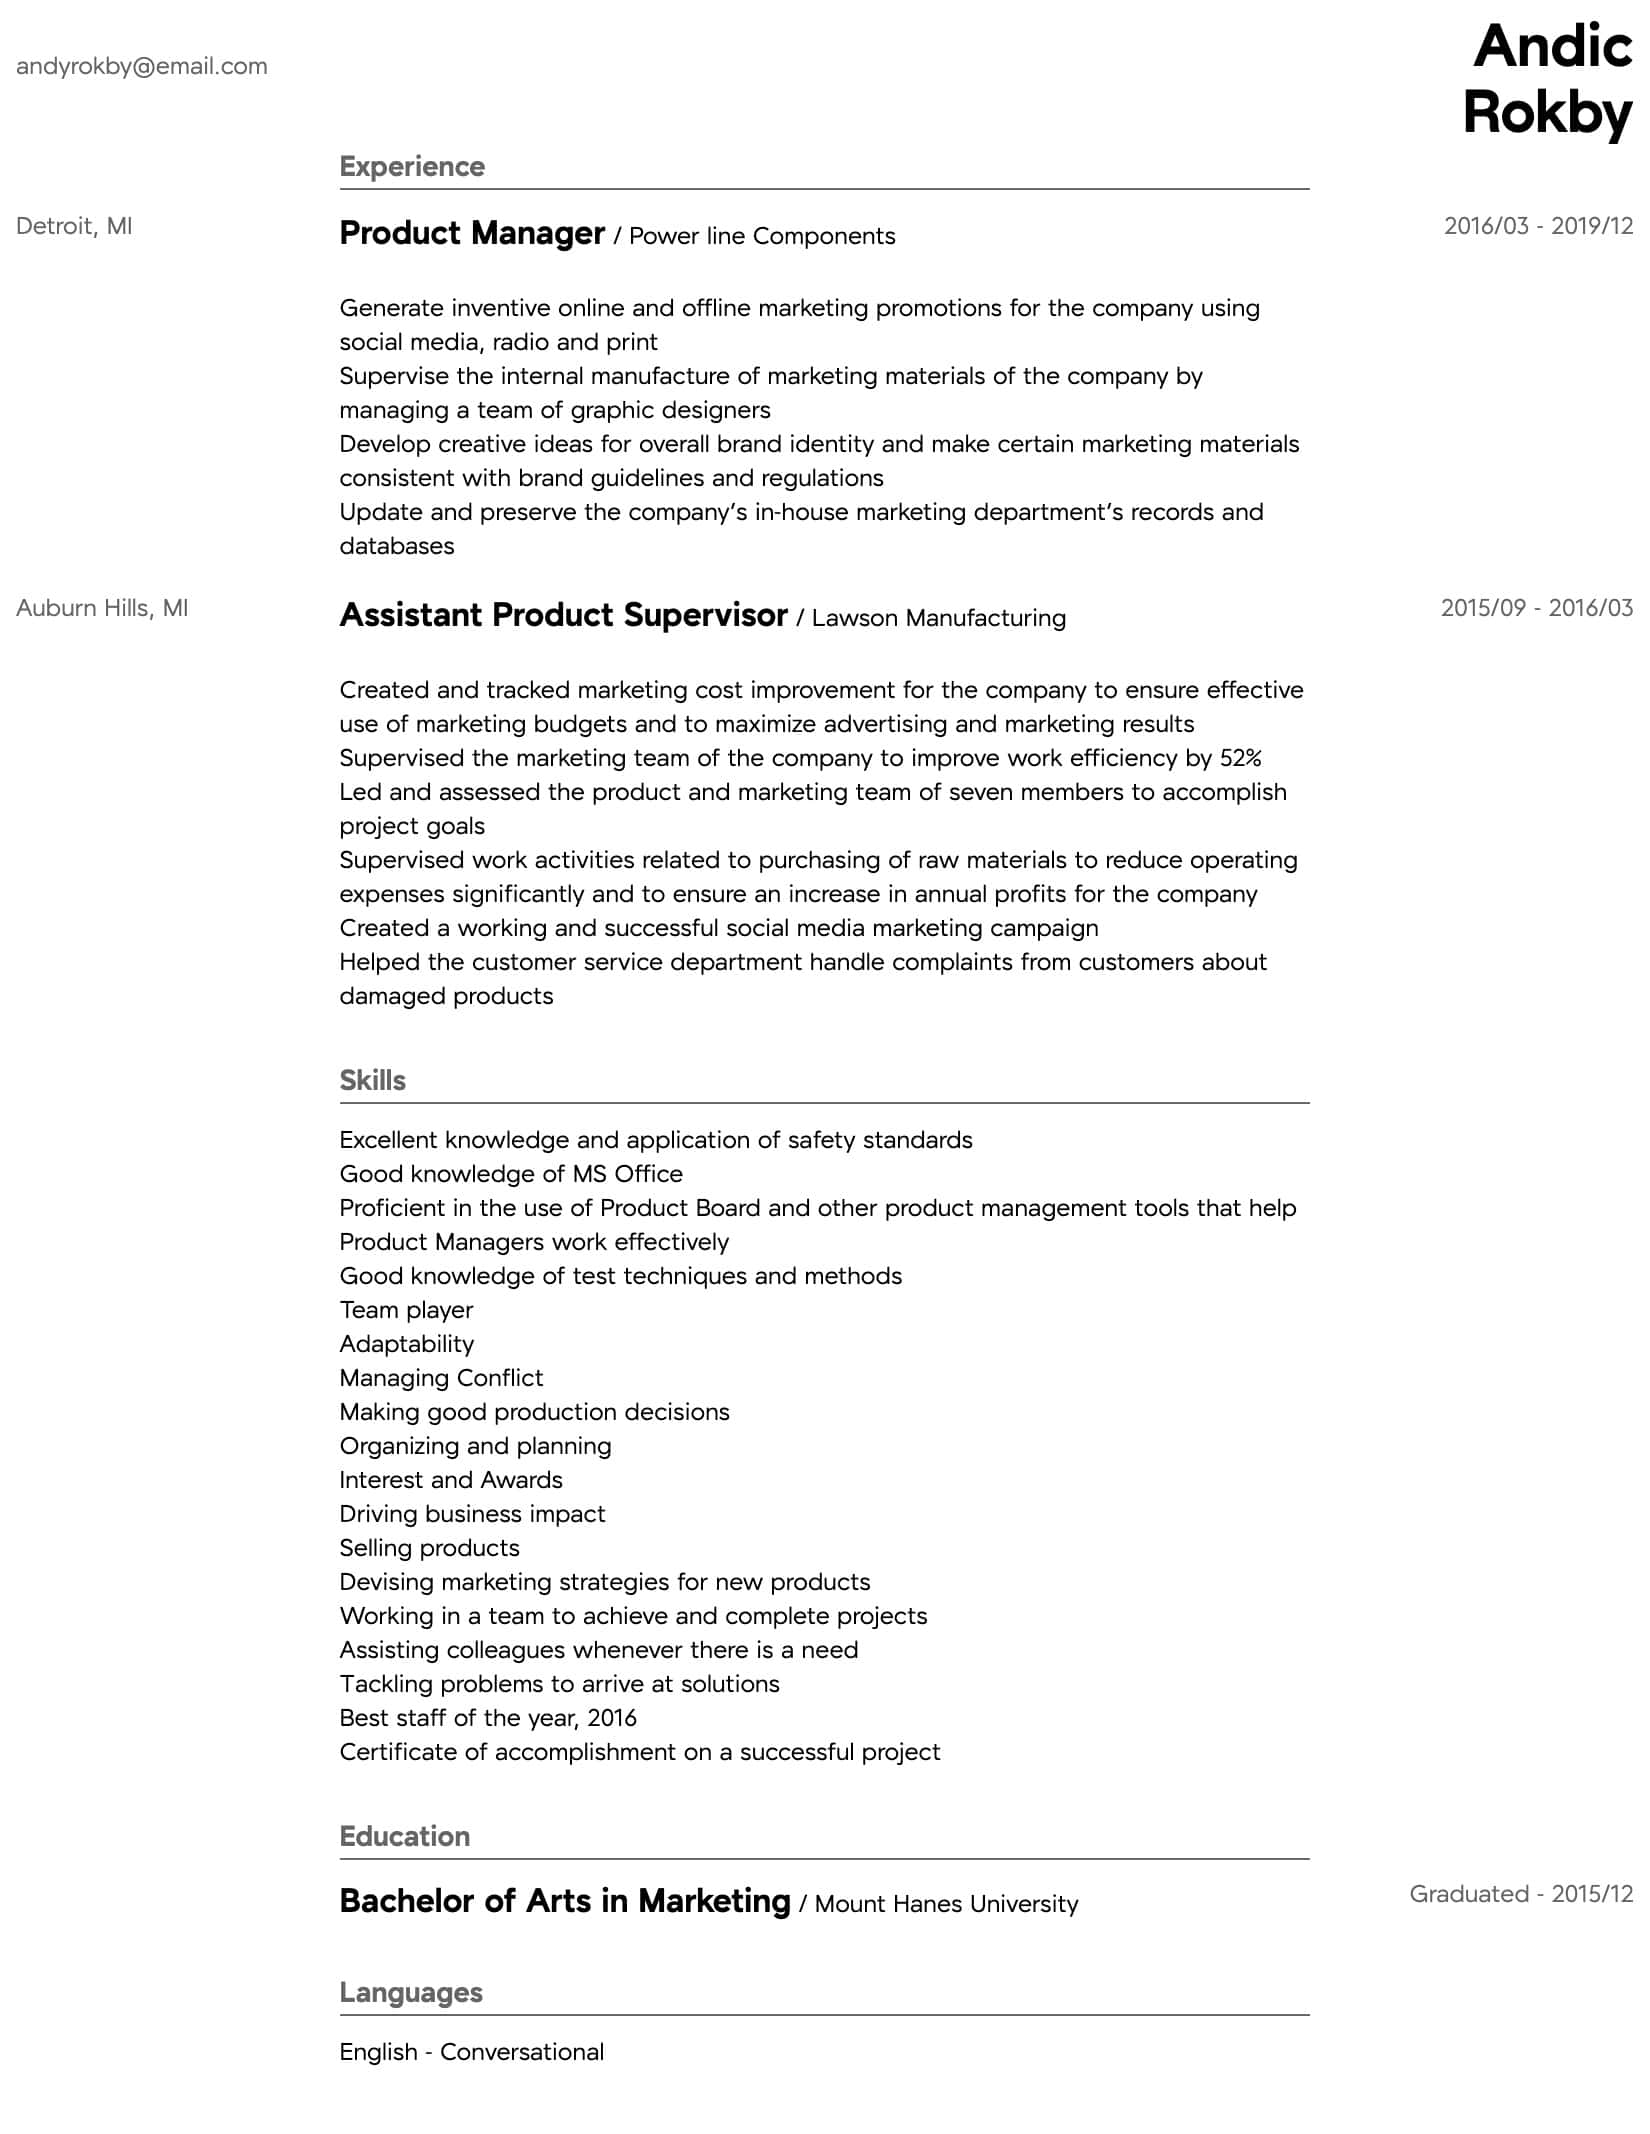 product manager resume samples all experience levels writer intermediate soccer cover Resume Product Manager Resume Writer